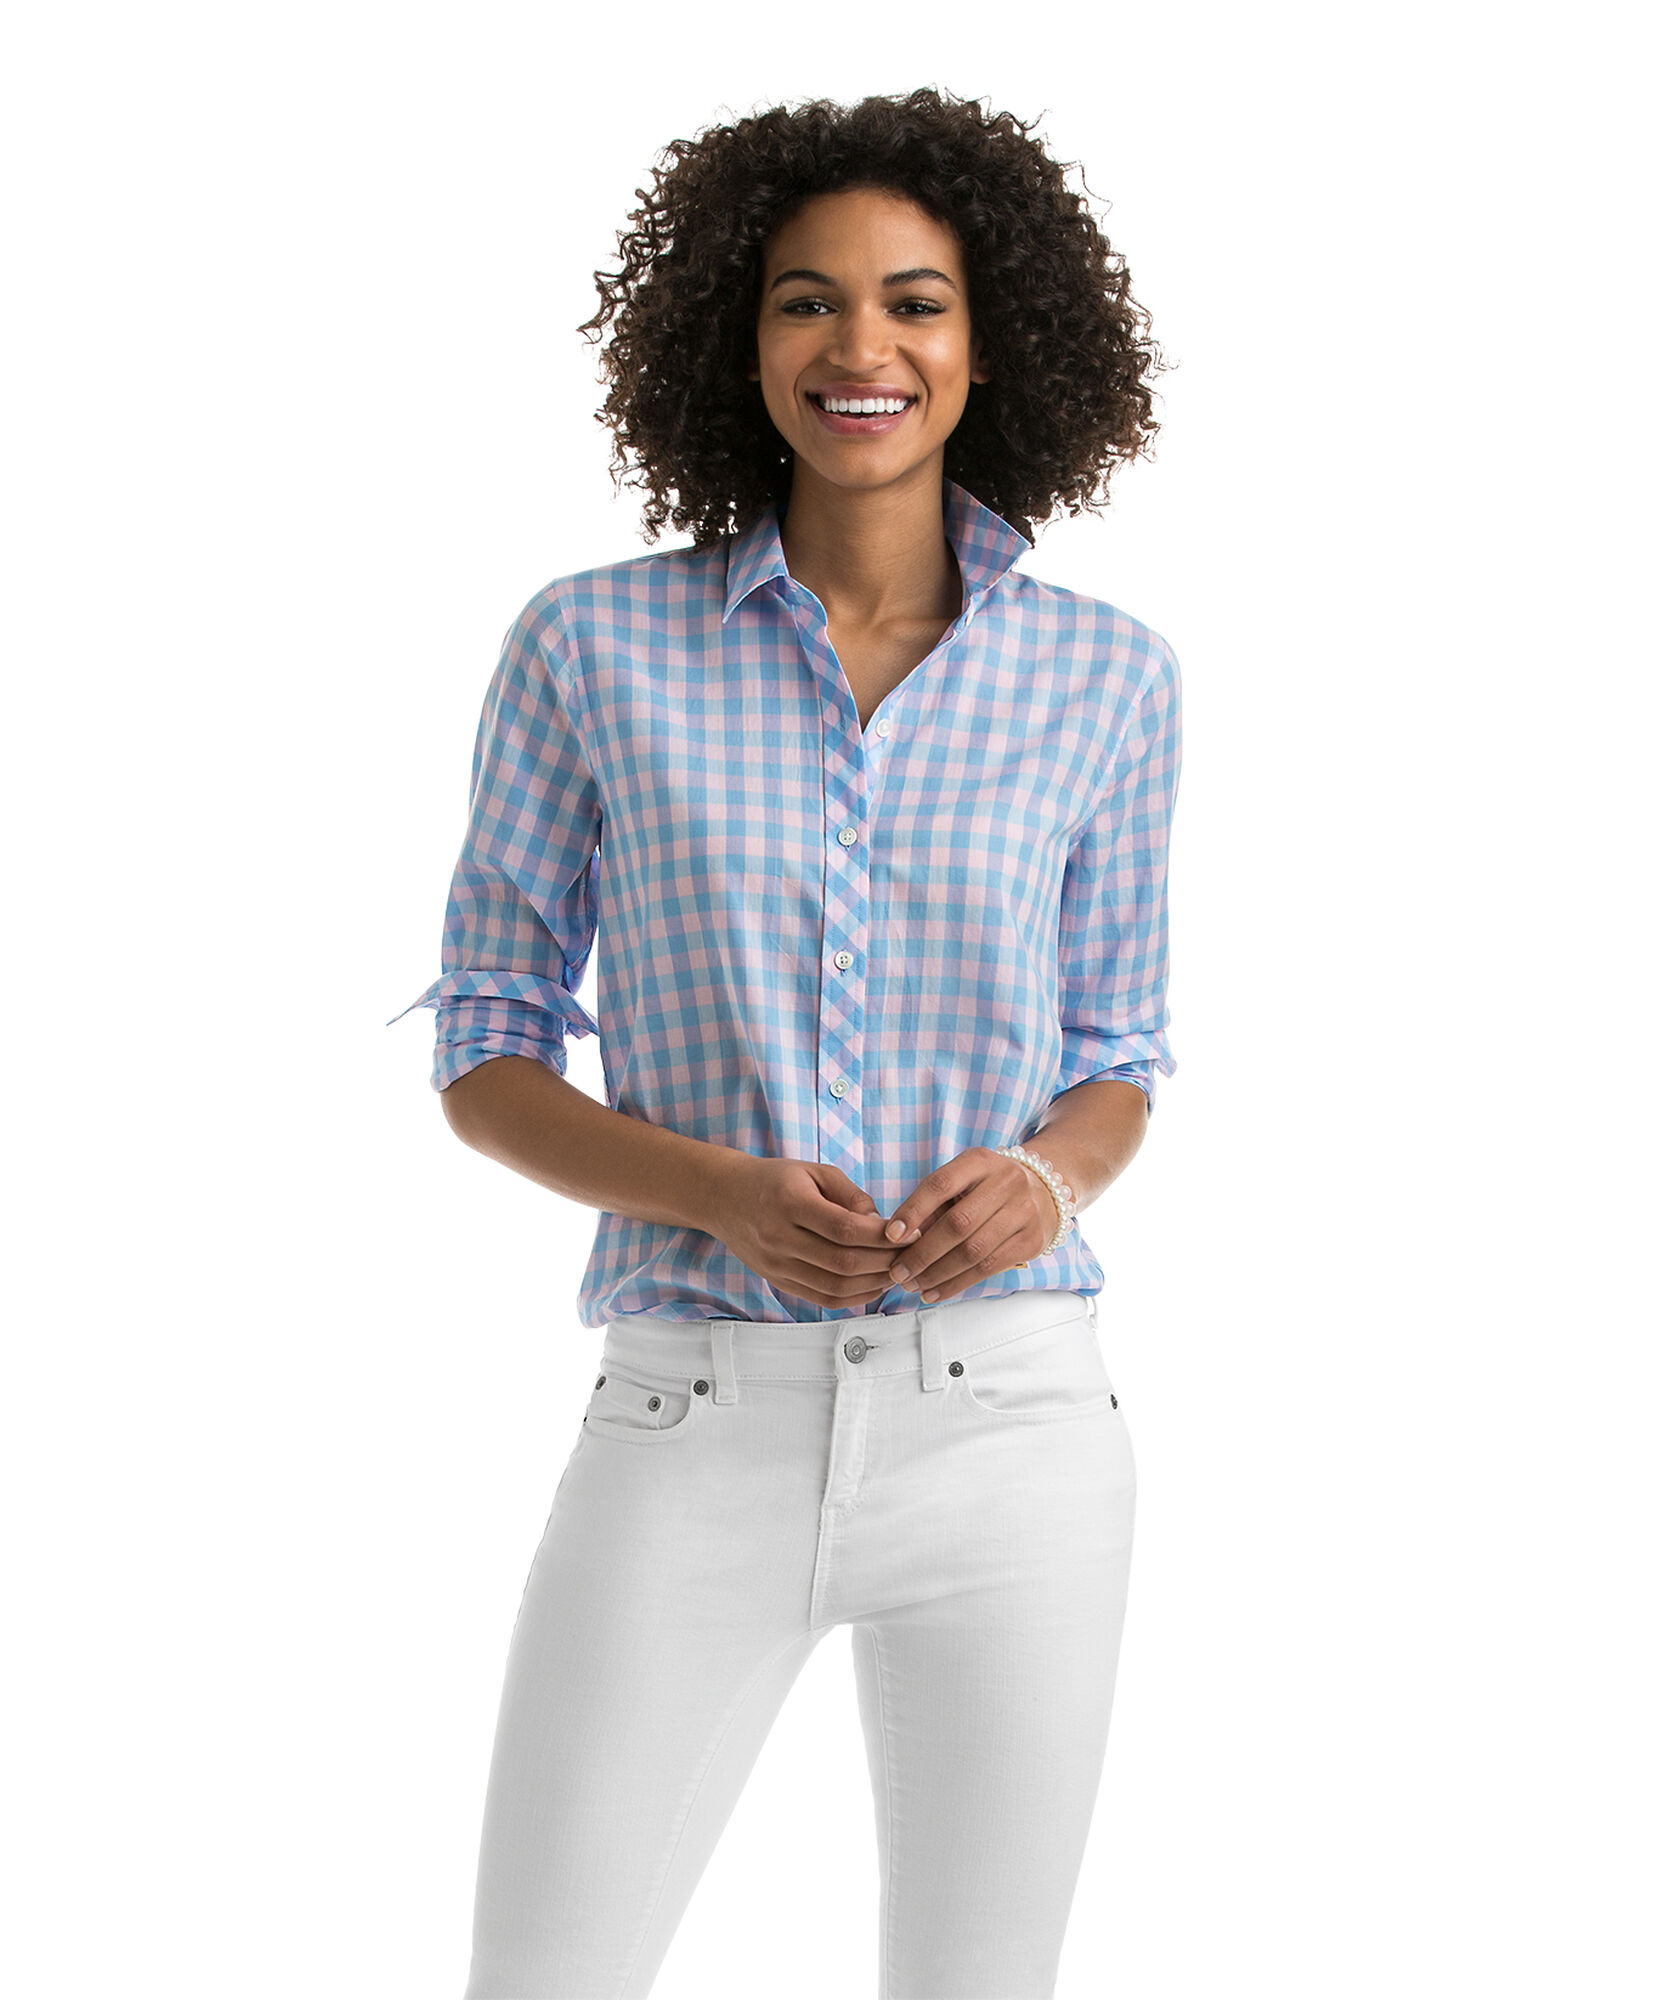 311a3a07a71ee6 Blyden Gingham Relaxed Button Down ($59.99 at Vineyard Vines)